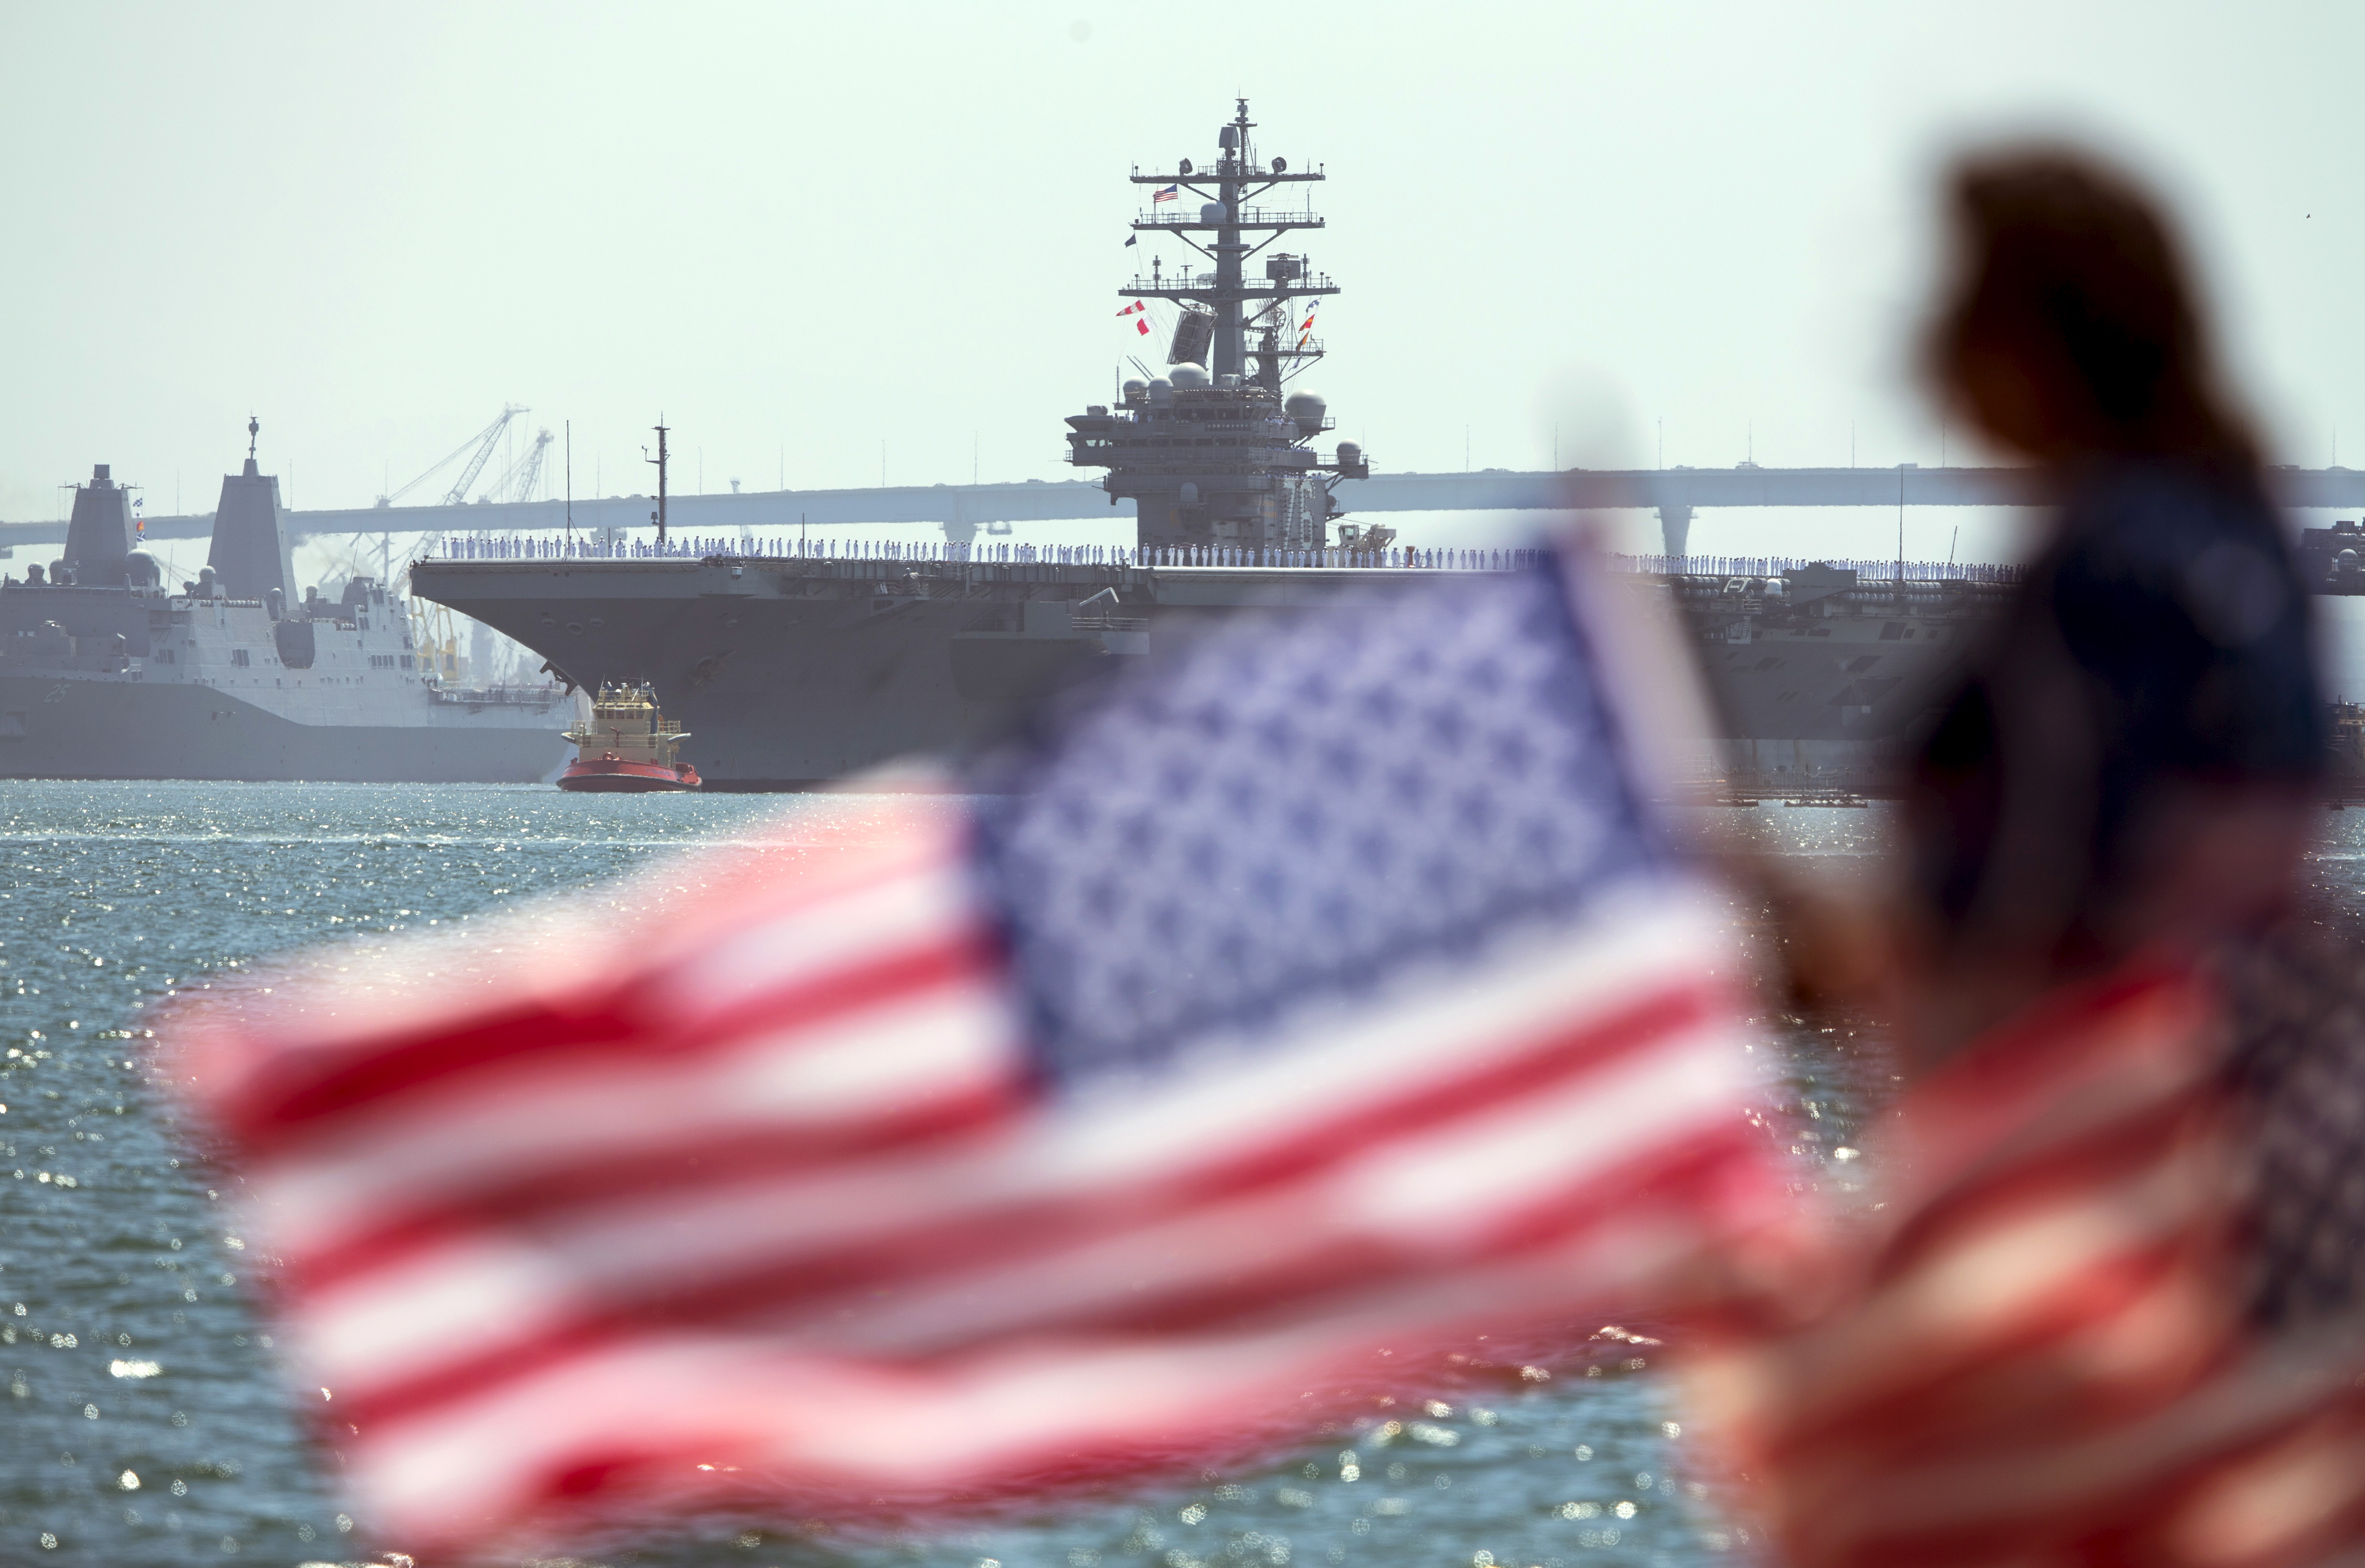 The USS Ronald Reagan, a Nimitz-class nuclear-powered super carrier, is followed by the USS Somerset as it departs for Yokosuka, Japan from Naval Station North Island in San Diego, California  August 31, 2015. The Reagan is replacing the USS George Washington as part of a complicated three-carrier swap that exchanges crews for ships, saving the Navy millions in moving costs.  REUTERS/Mike Blake - GF10000188439